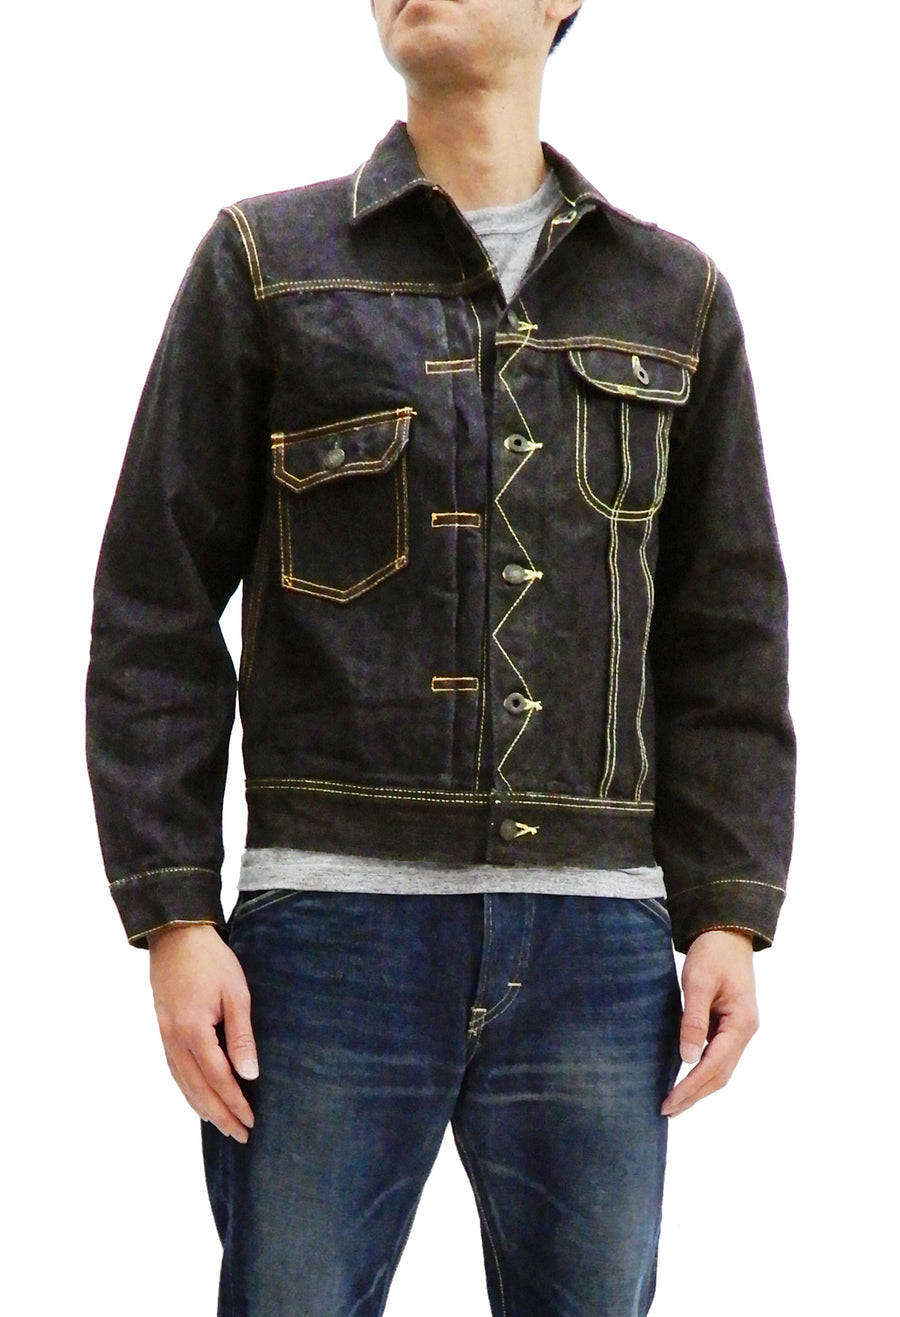 Studio D'artisan Jean Jacket Men's Denim Trucker Jacket with asymmetrical design SP-055